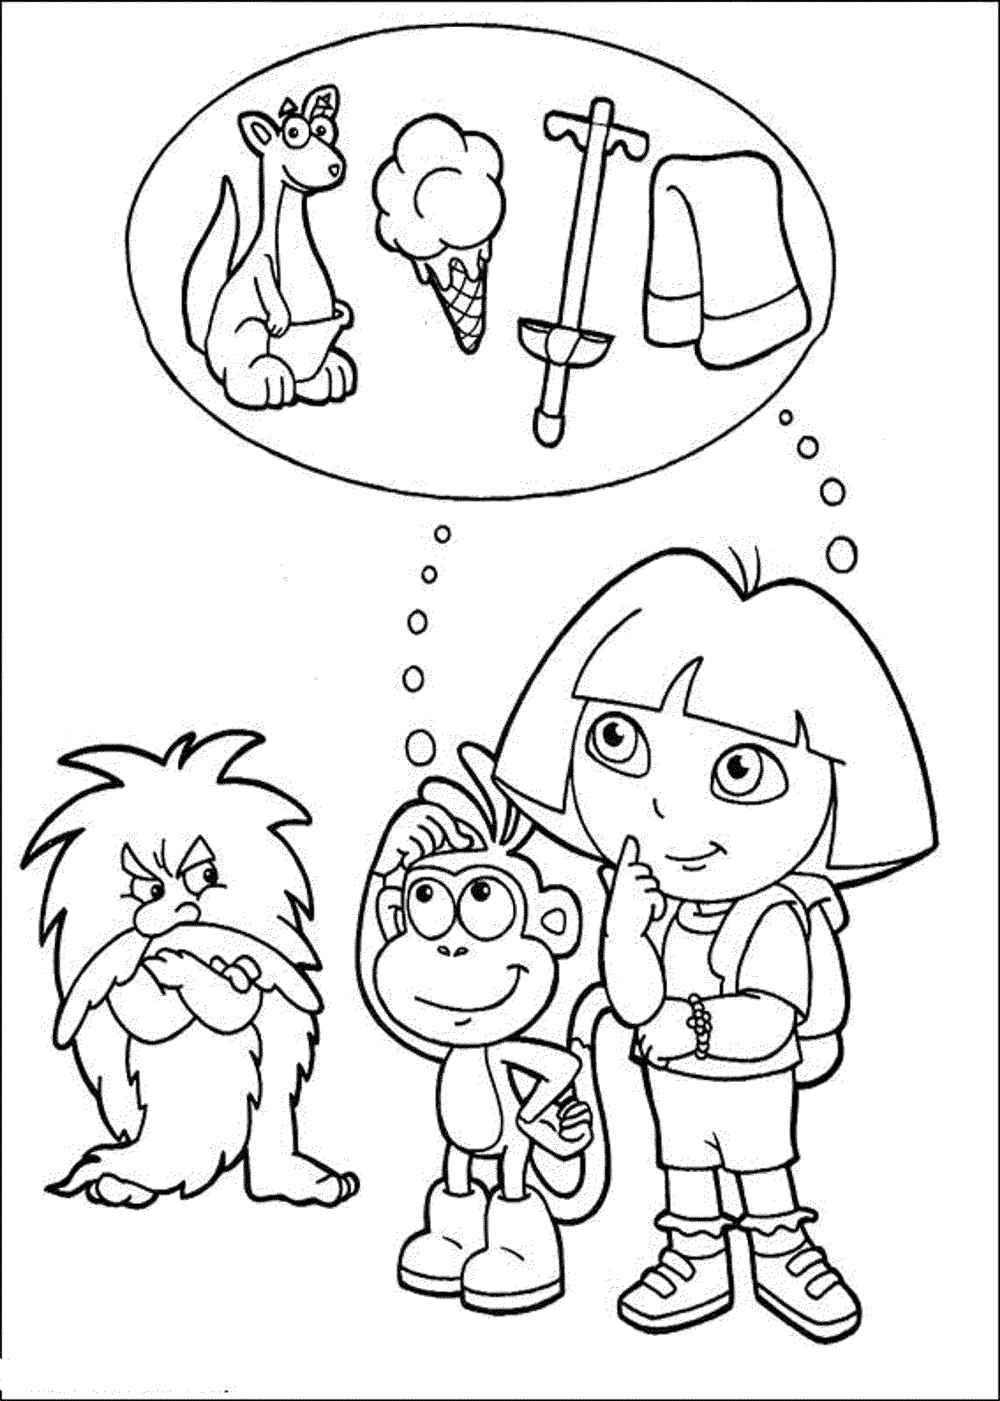 dora colouring pages printable print download dora coloring pages to learn new things dora colouring pages printable